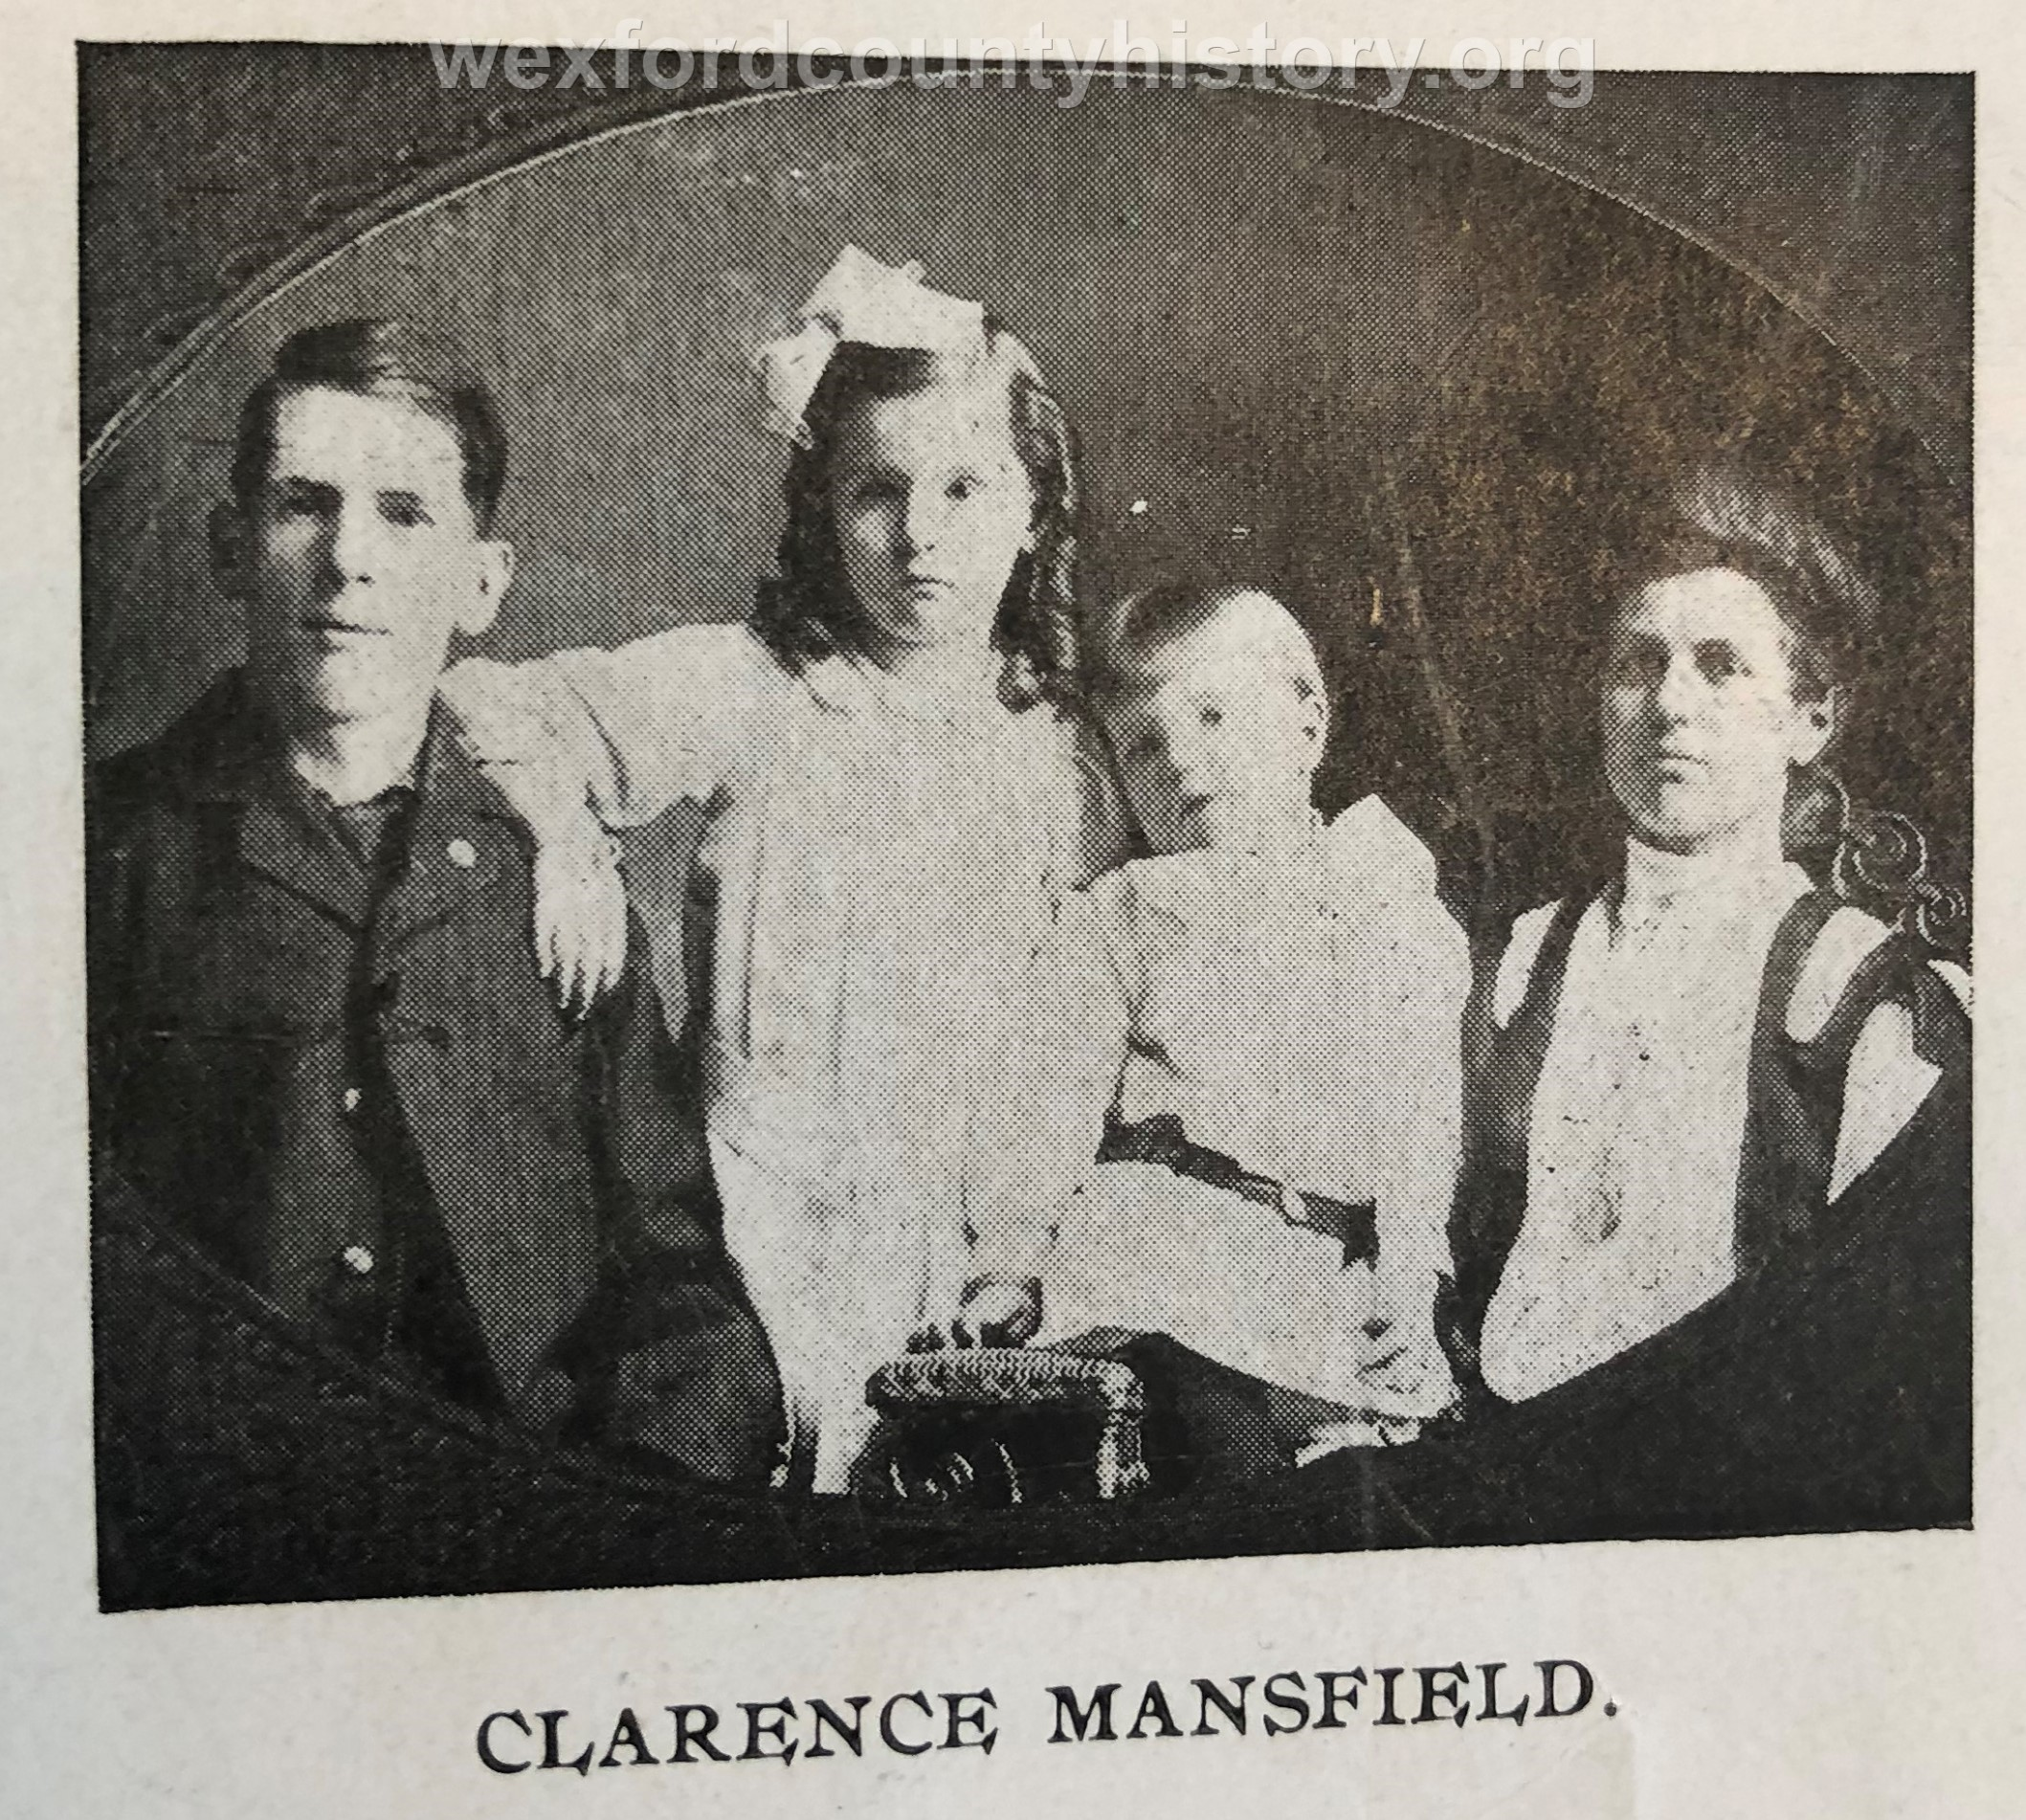 Clarence Mansfield